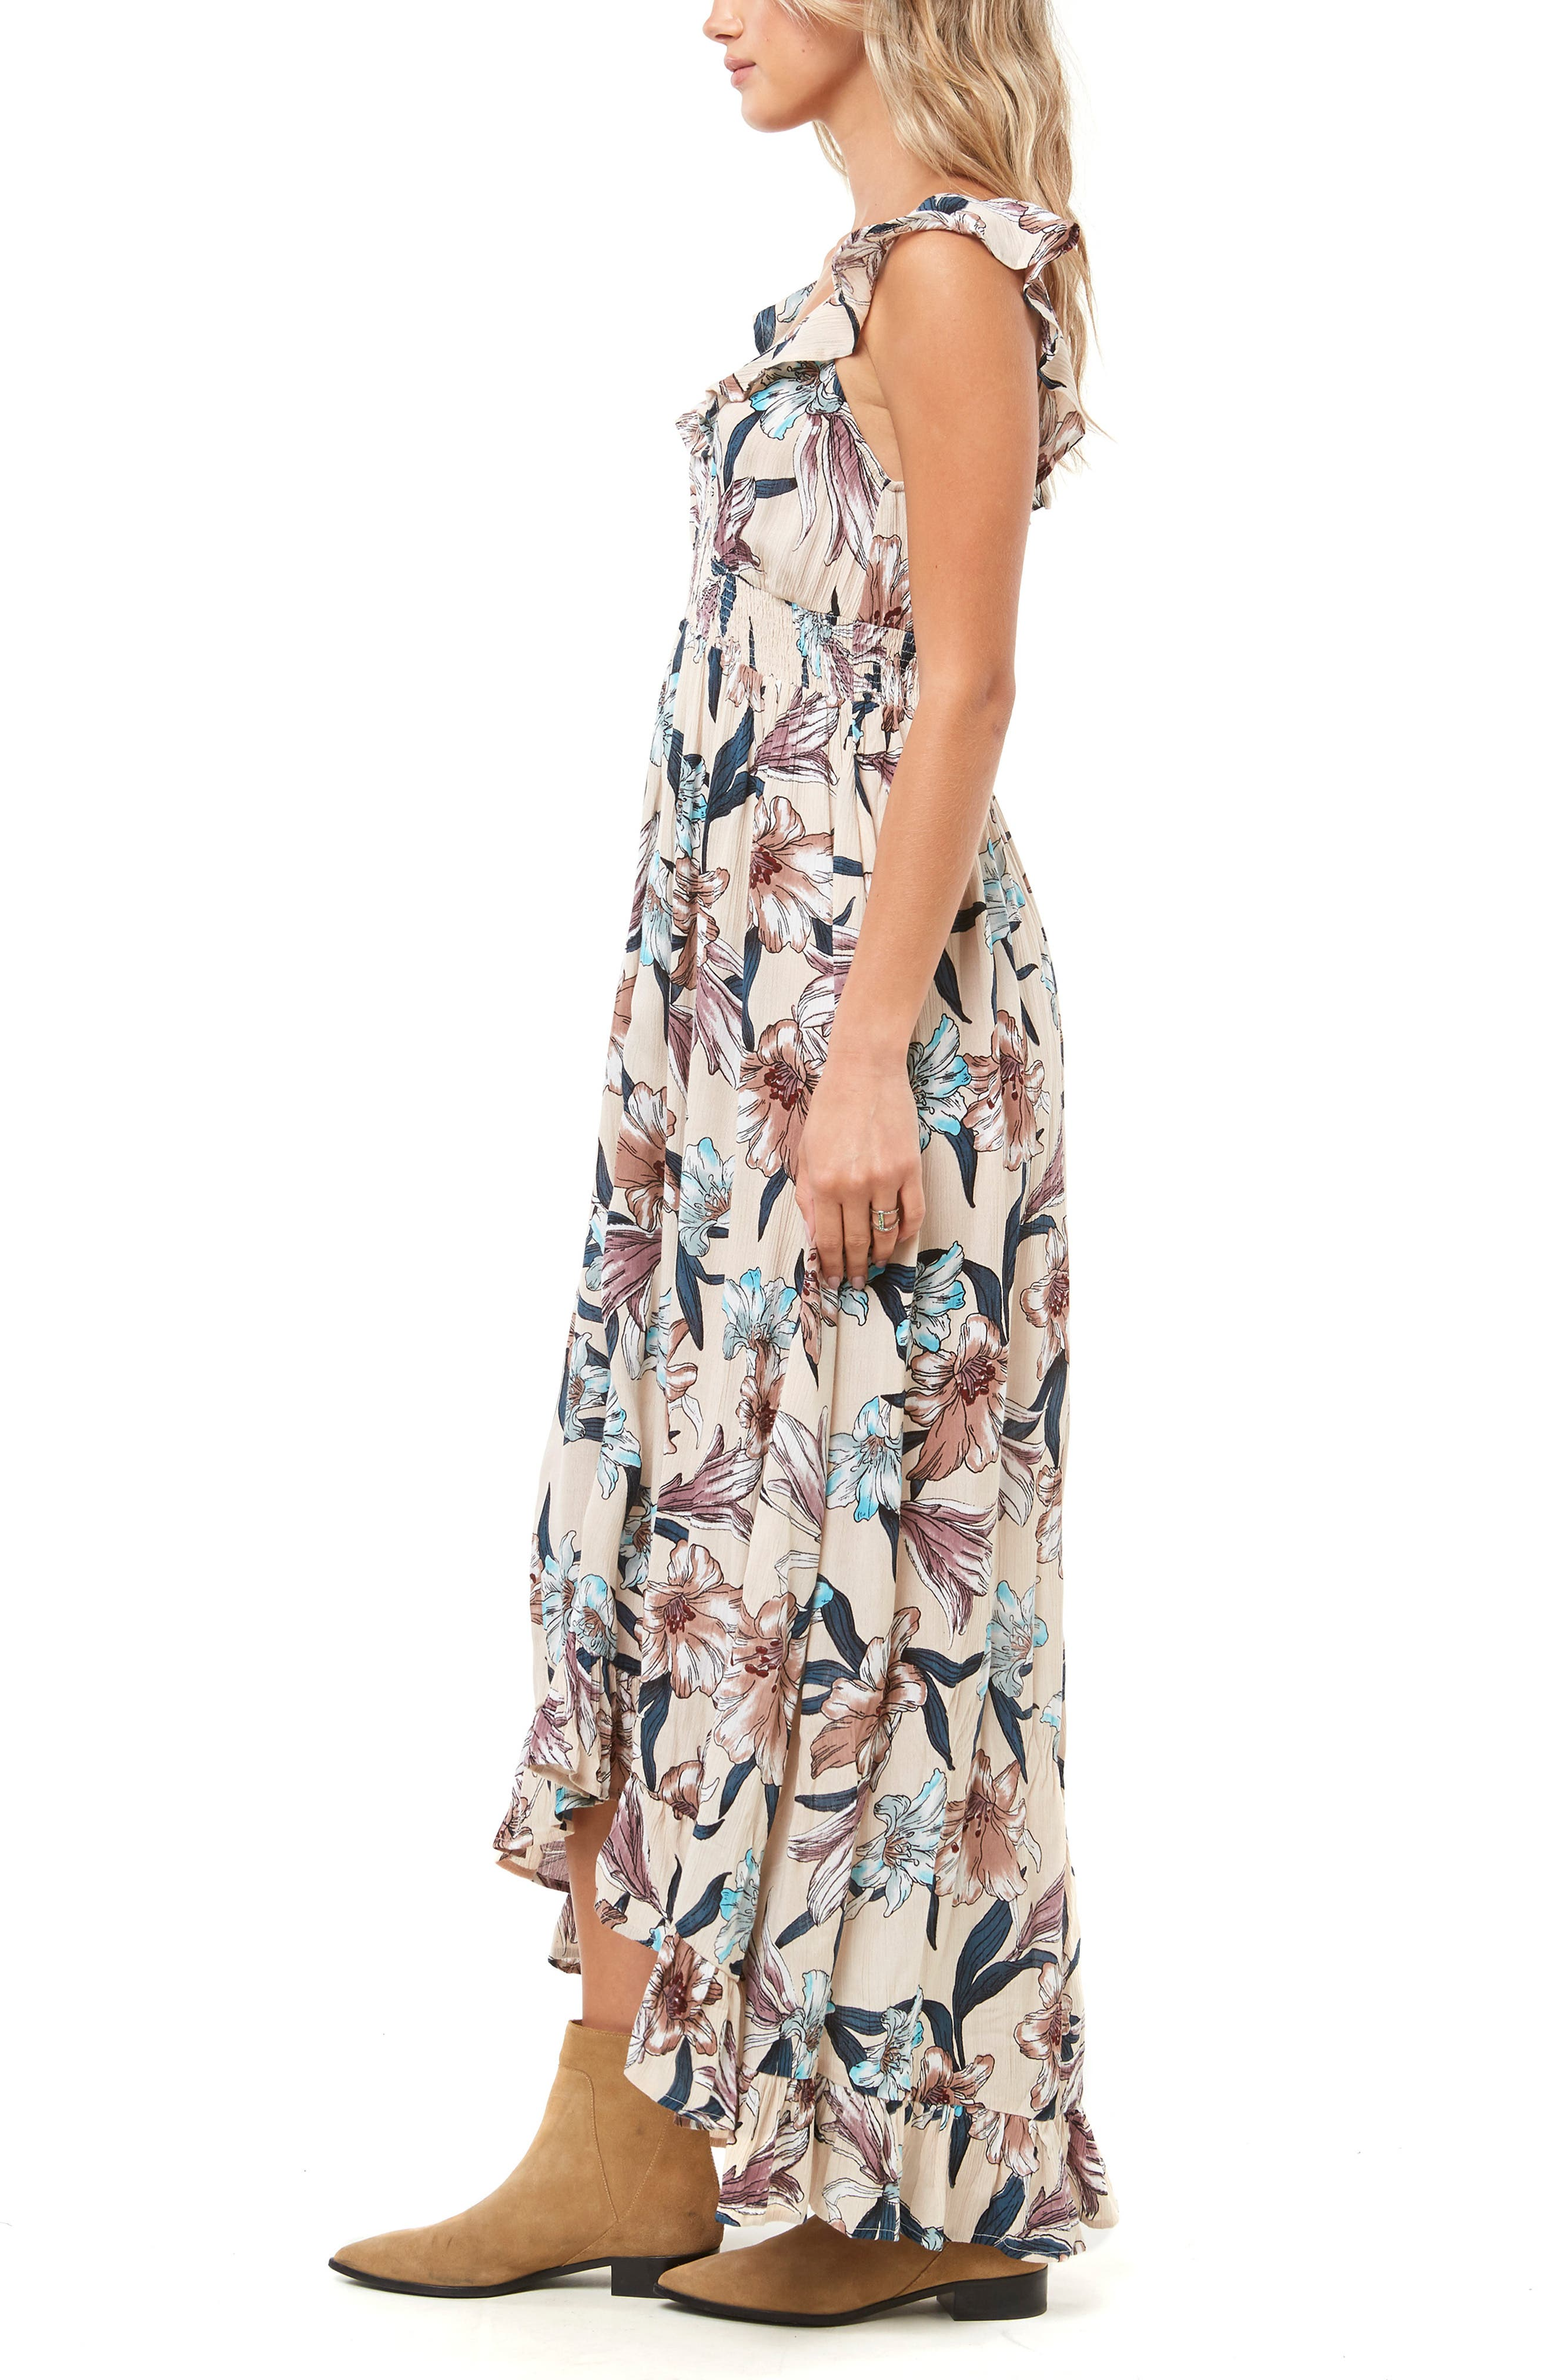 Cleo Ruffle Maxi Dress,                             Alternate thumbnail 3, color,                             MULTI COLORED